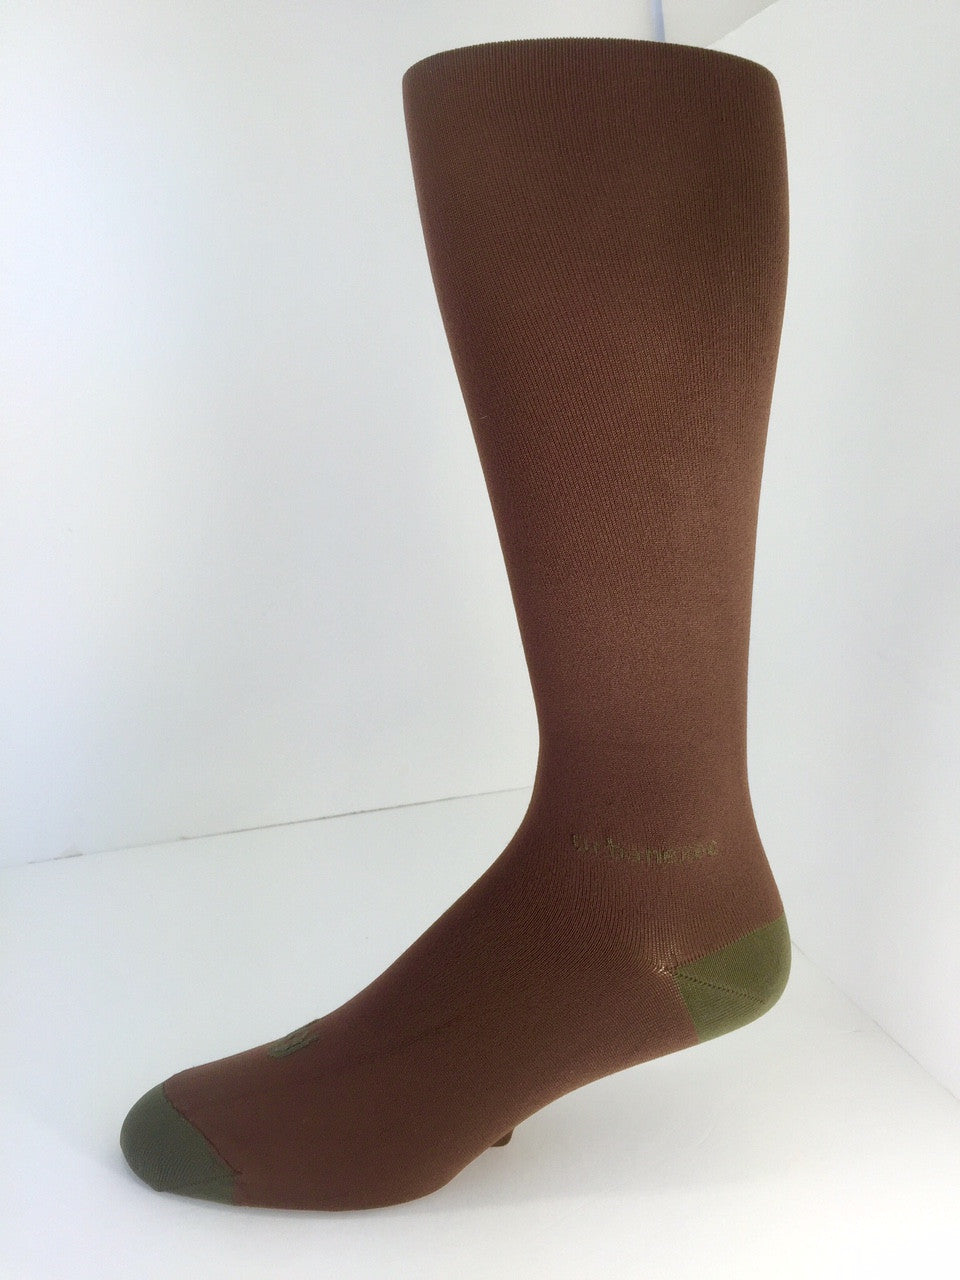 Men's Socks Performance ThinSkin Solid Brown with Dark Khaki tips